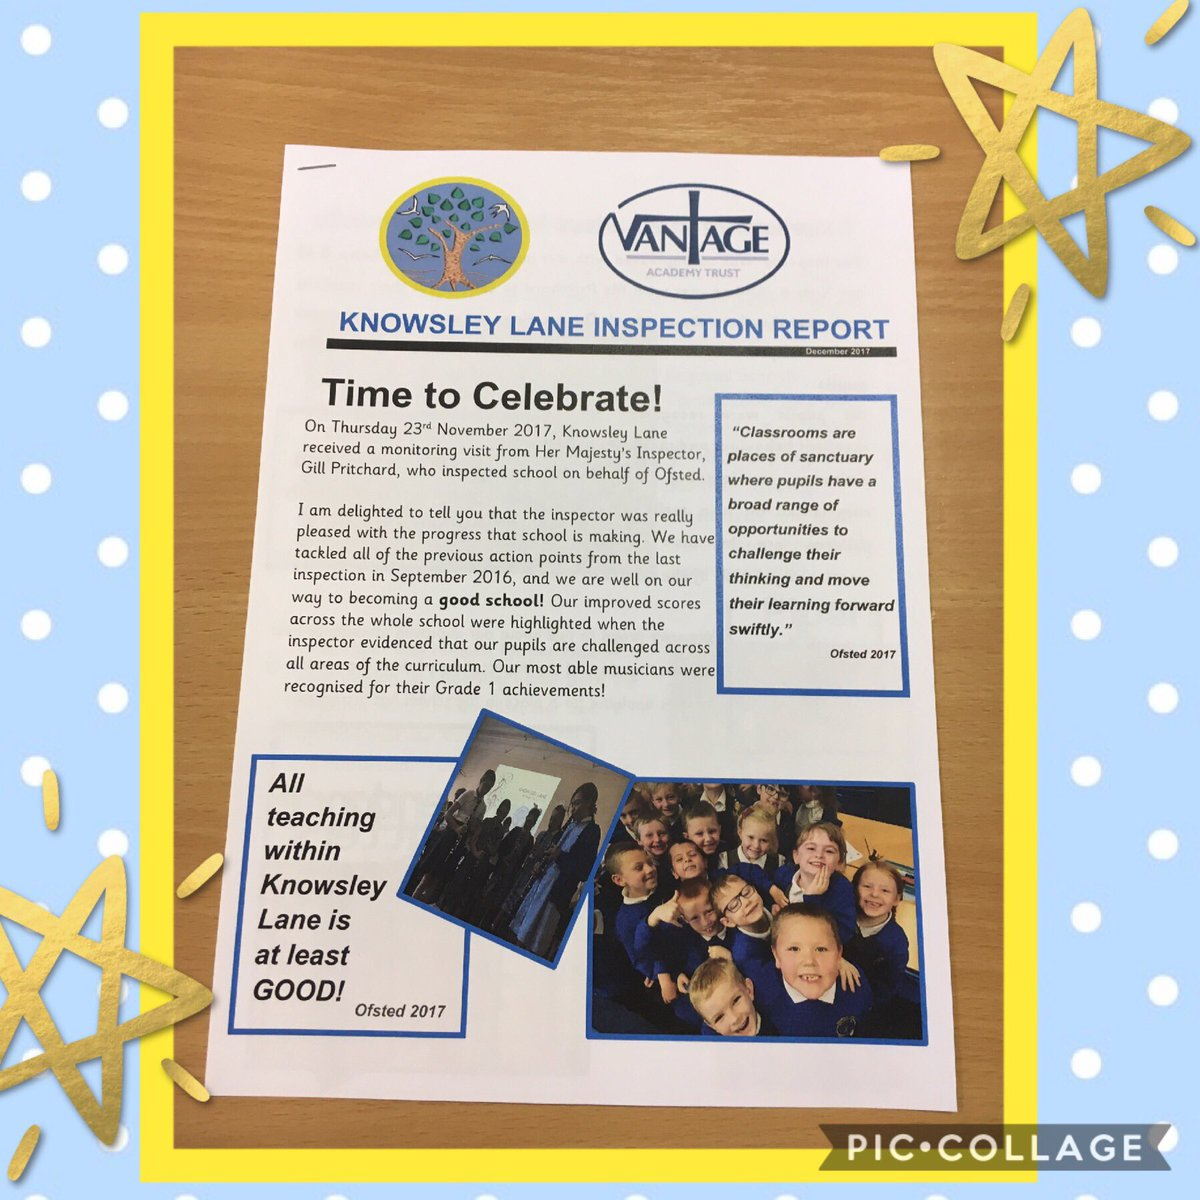 It really is a time to celebrate at #Knowsley Lane!  Fantastic progress and strong standards! #proudprincipal https://t.co/yv4f5Z77fI